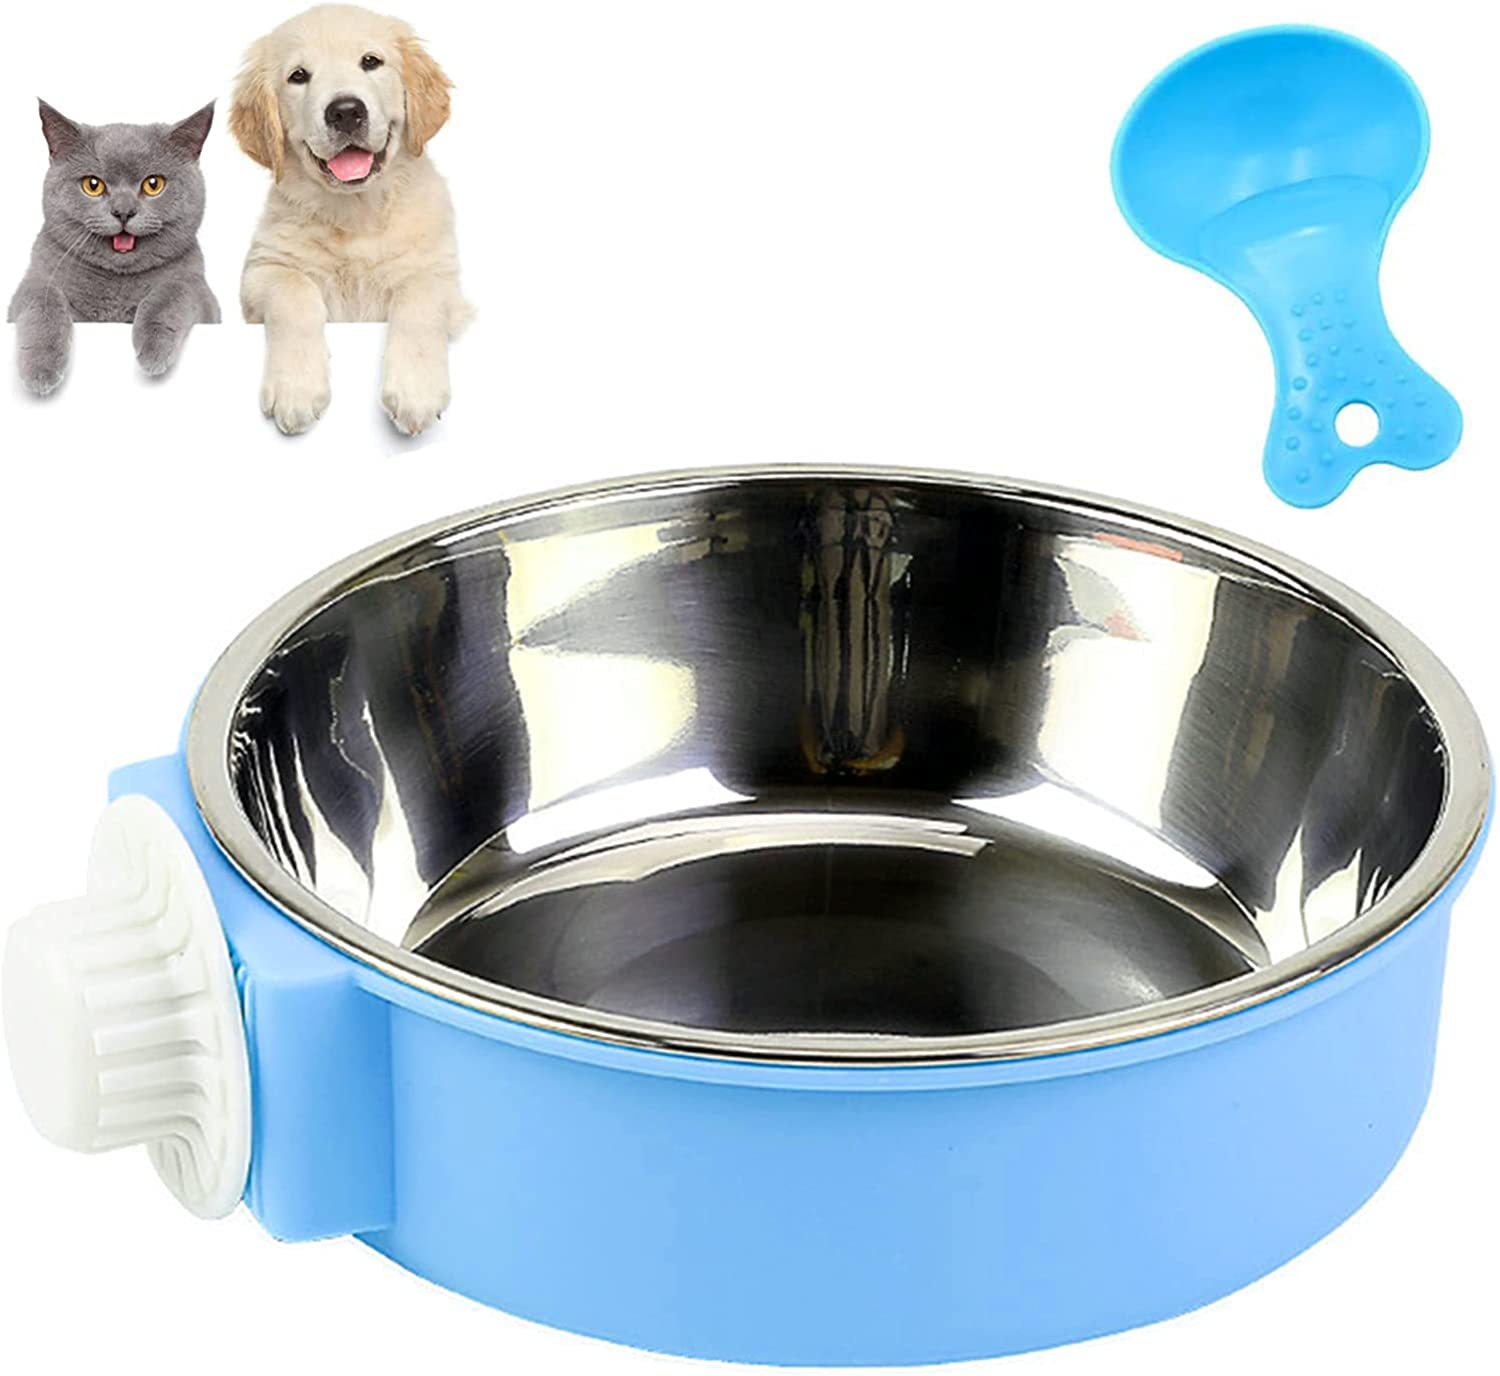 Lucky Interests Blue Crate Dog Bowl, Plastic Bowl & Stainless Steel Bowl Removable Hanging Food & Water Feeder 2-in-1 Cage Bowl Coop Cup for Cat, Dog, Birds, Parrot, Puppy with Pet Food Spoons